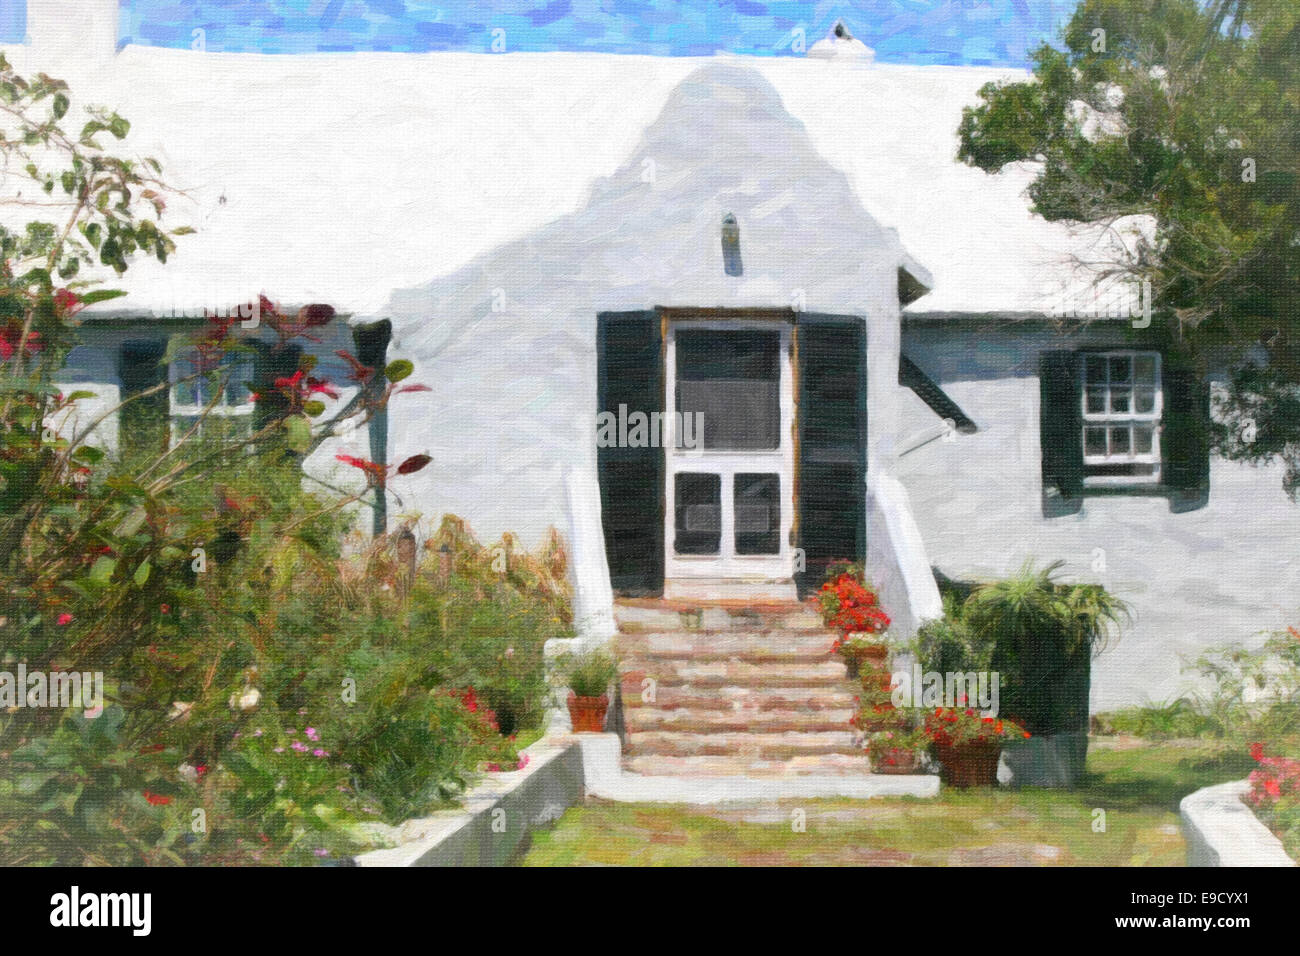 Digital painting of a very old Bermudian home with a front garden. - Stock Image